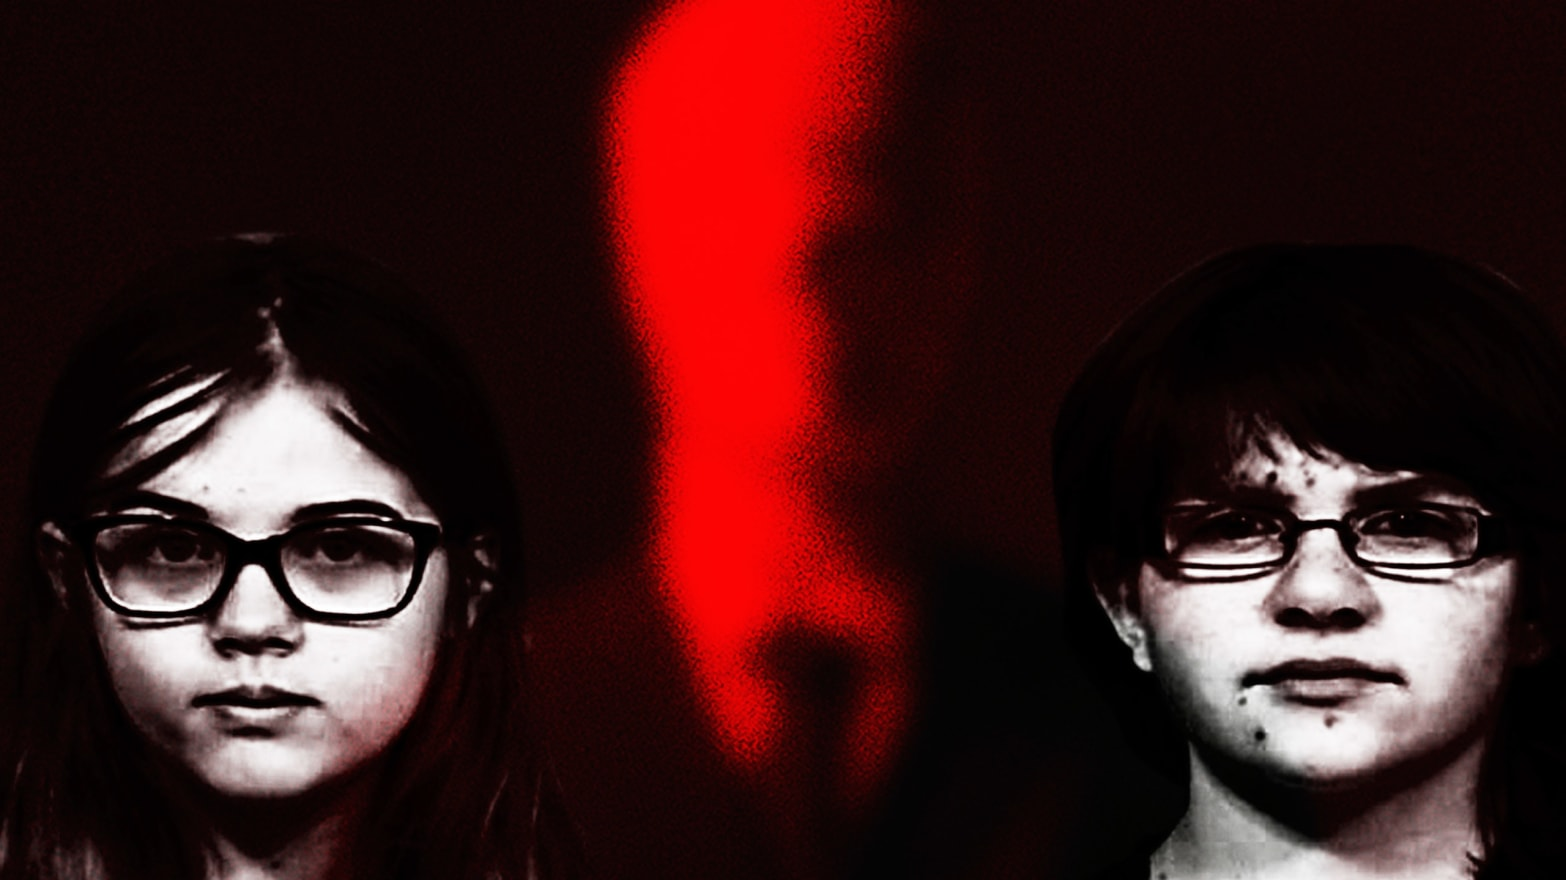 How the 'Slenderman' Meme Drove Two Teenage Girls to Try to Kill